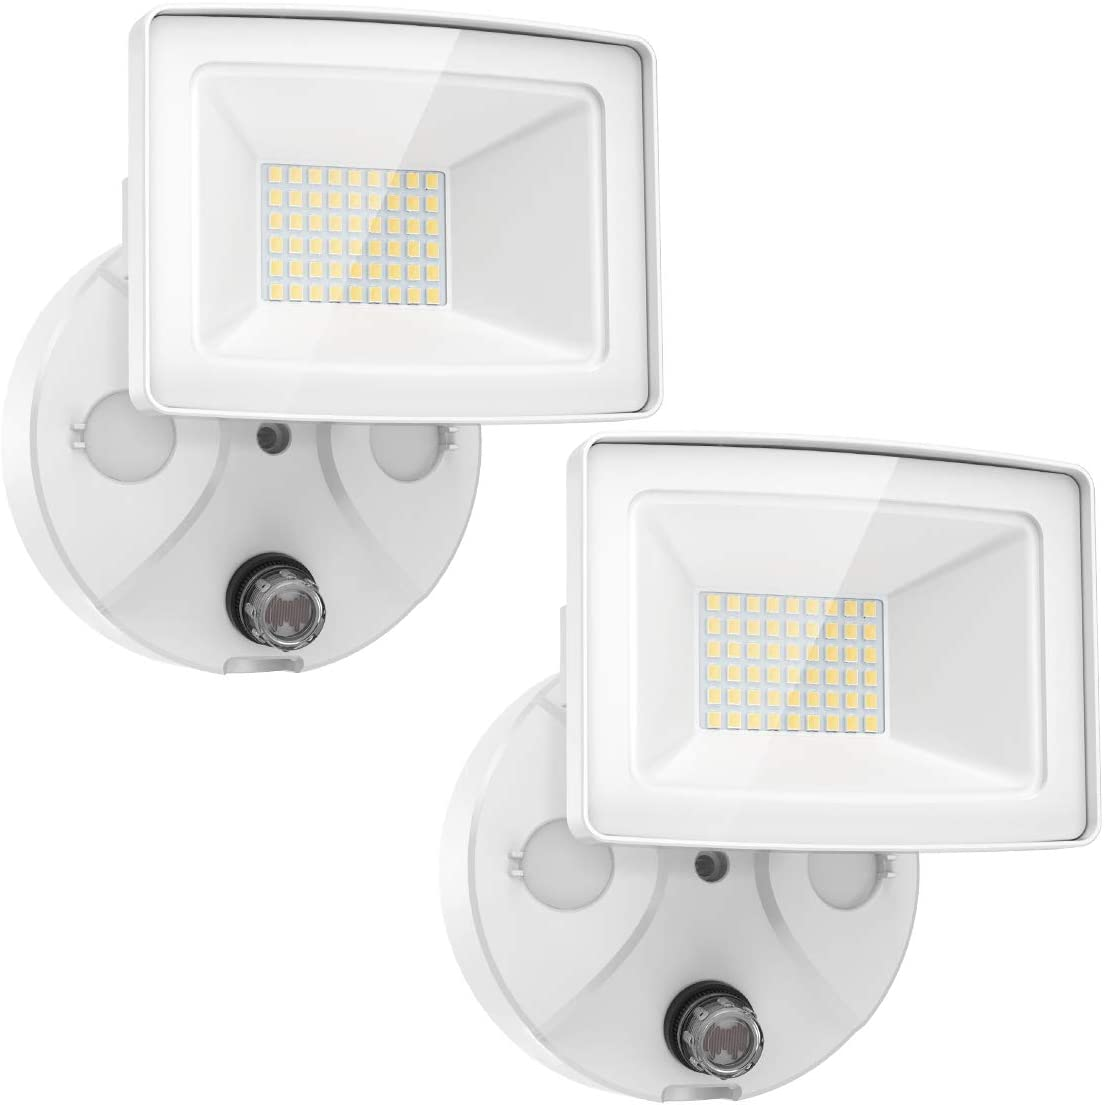 Onforu 2 Pack 30W Dusk to Dawn LED Security Lights, 3000lm Outdoor Flood Lights, IP65 Waterproof Exterior Floodlights with Photocell 5000K Daylight White for Garage, Patio, Garden, Yard, Barn